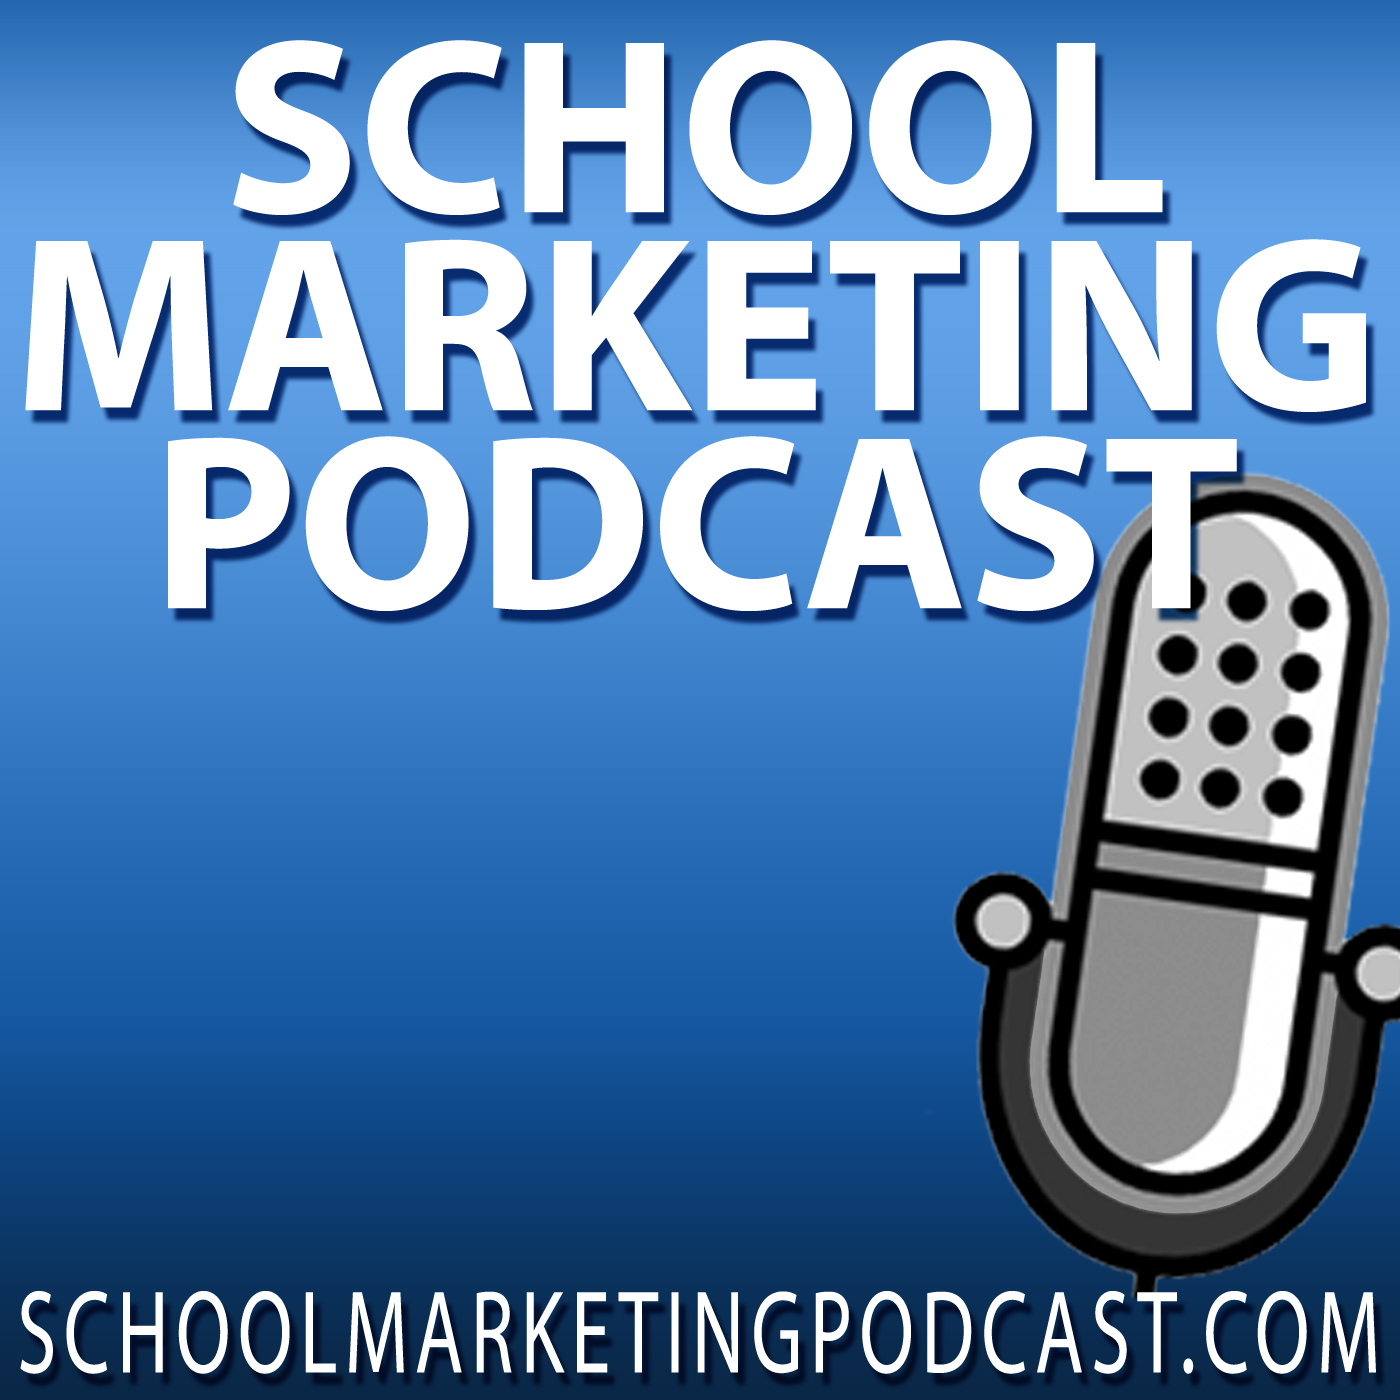 #63: Retention 3 of 3: Optimizing Your Re-Enrollment Campaign